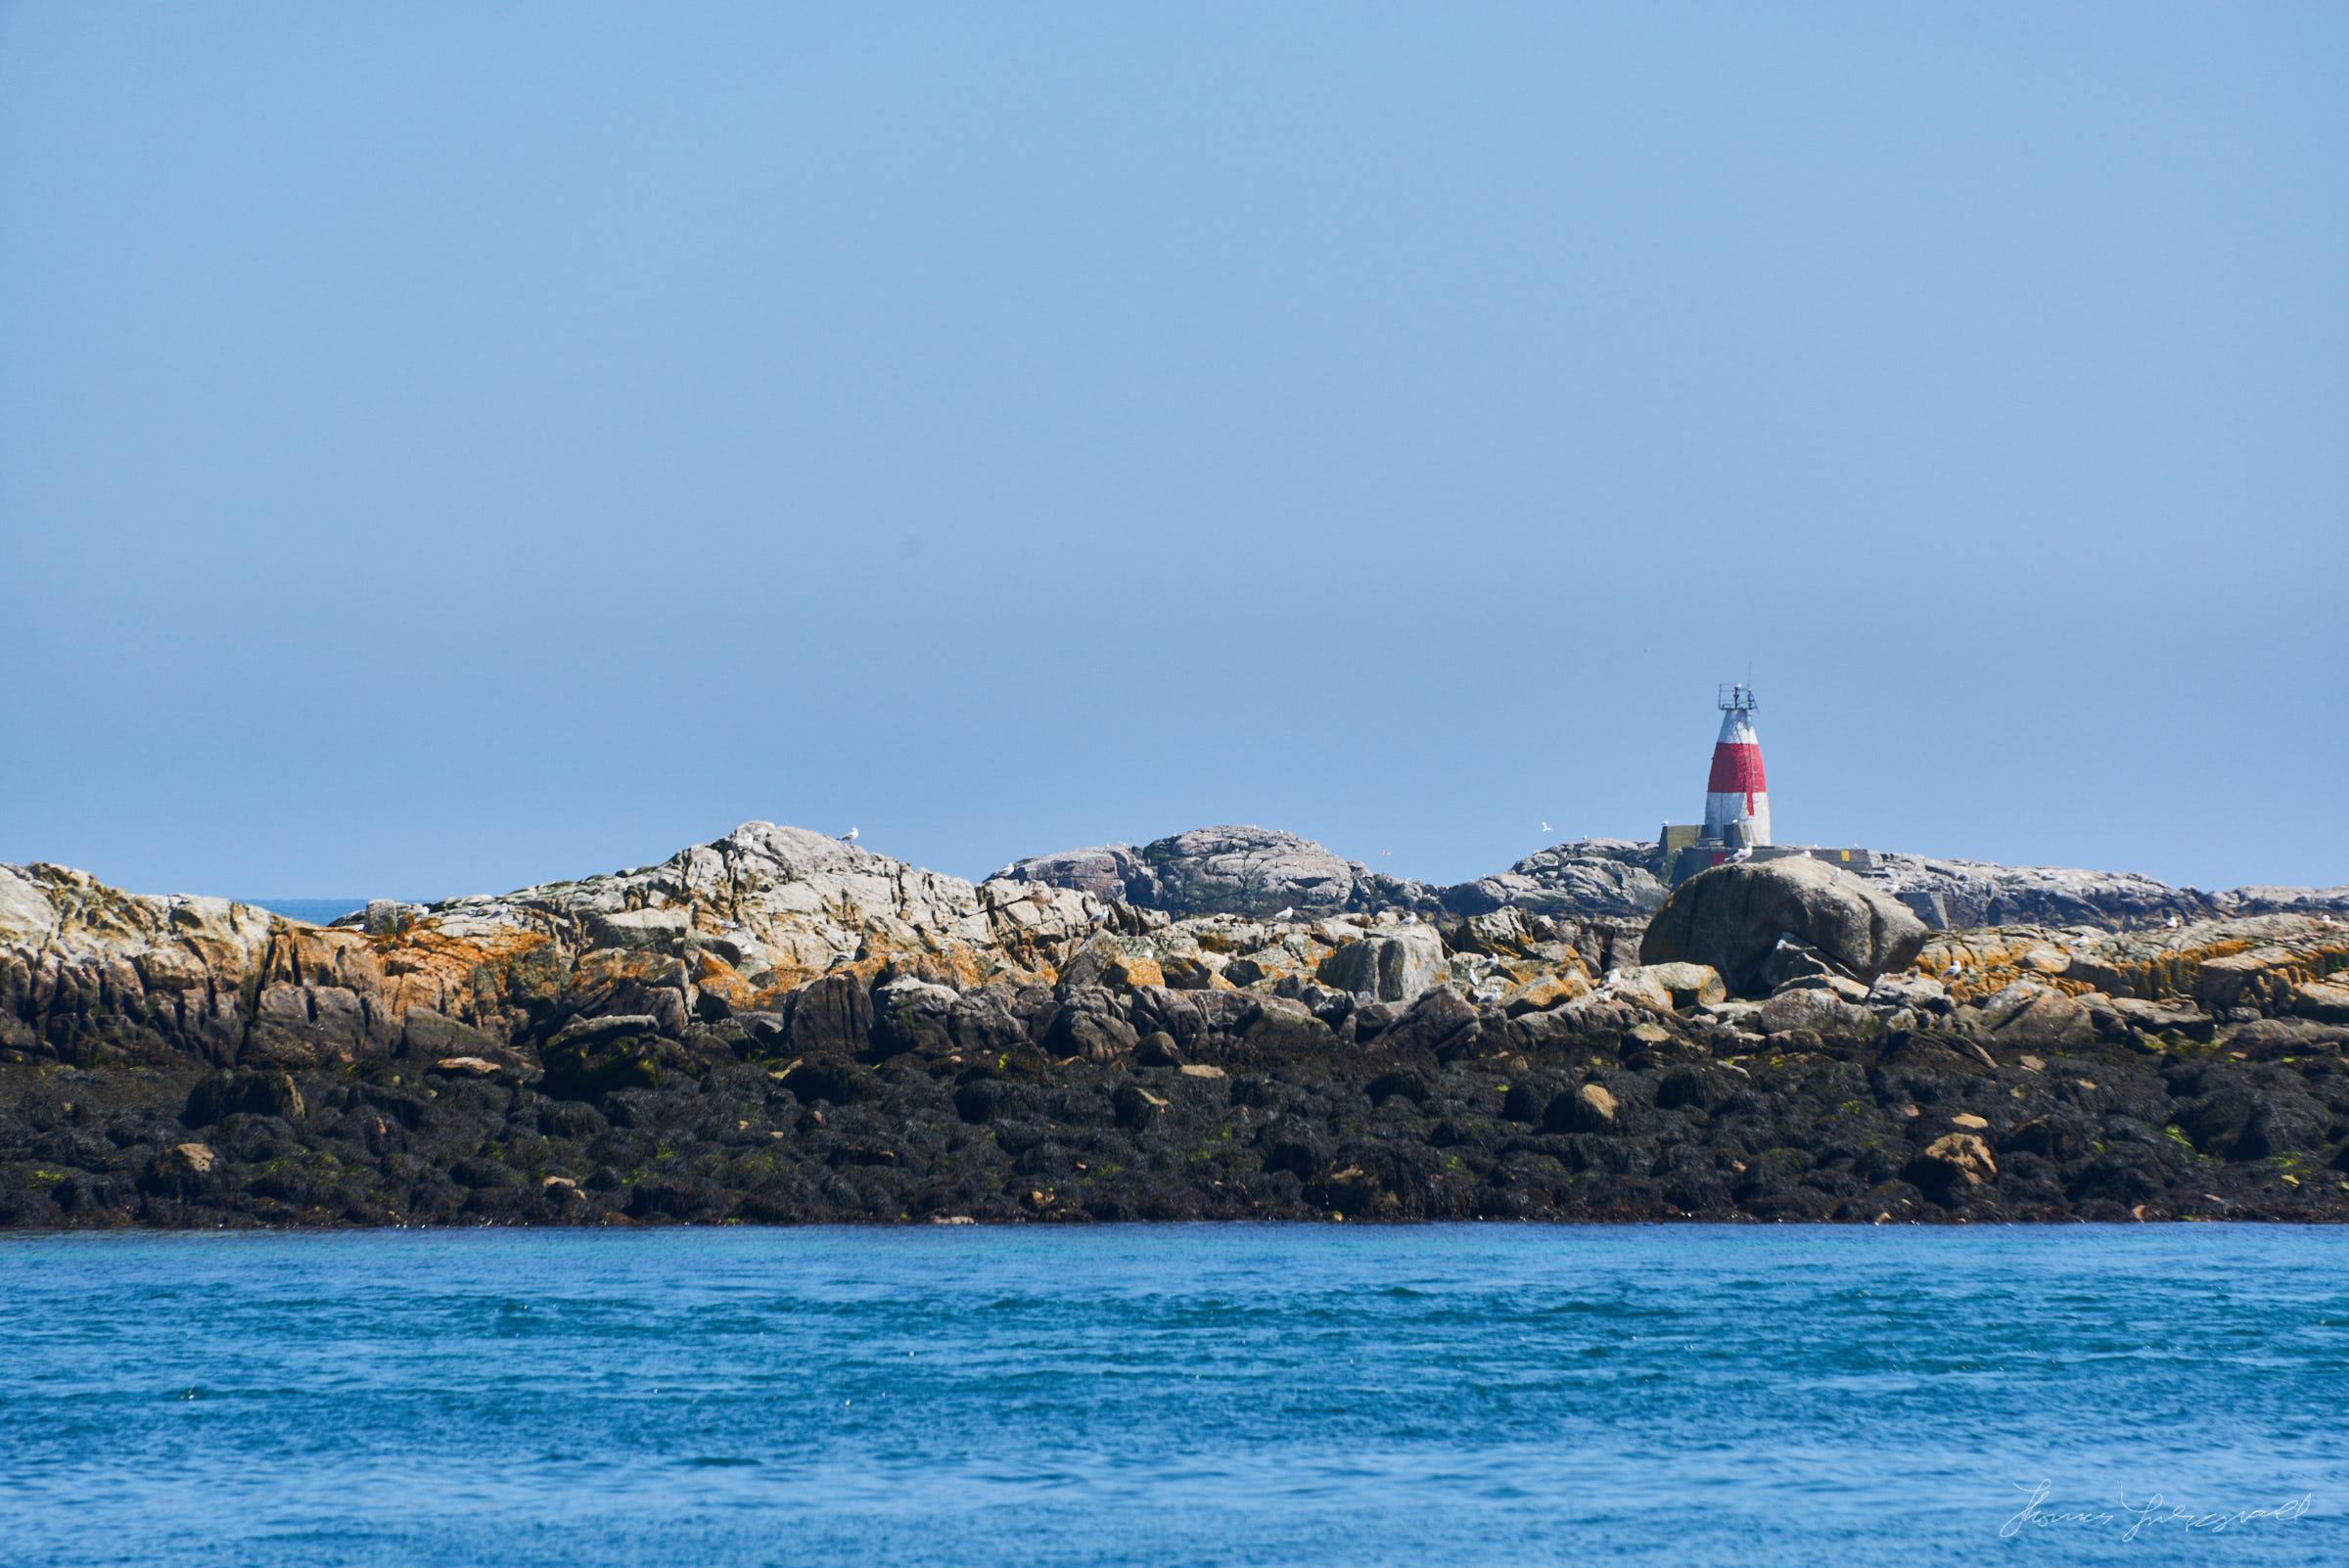 Rockey outcrops and sall island formations in Dublin bay, off the cost of Dalkey, with a lightouse or warning buyoy on one of the islands